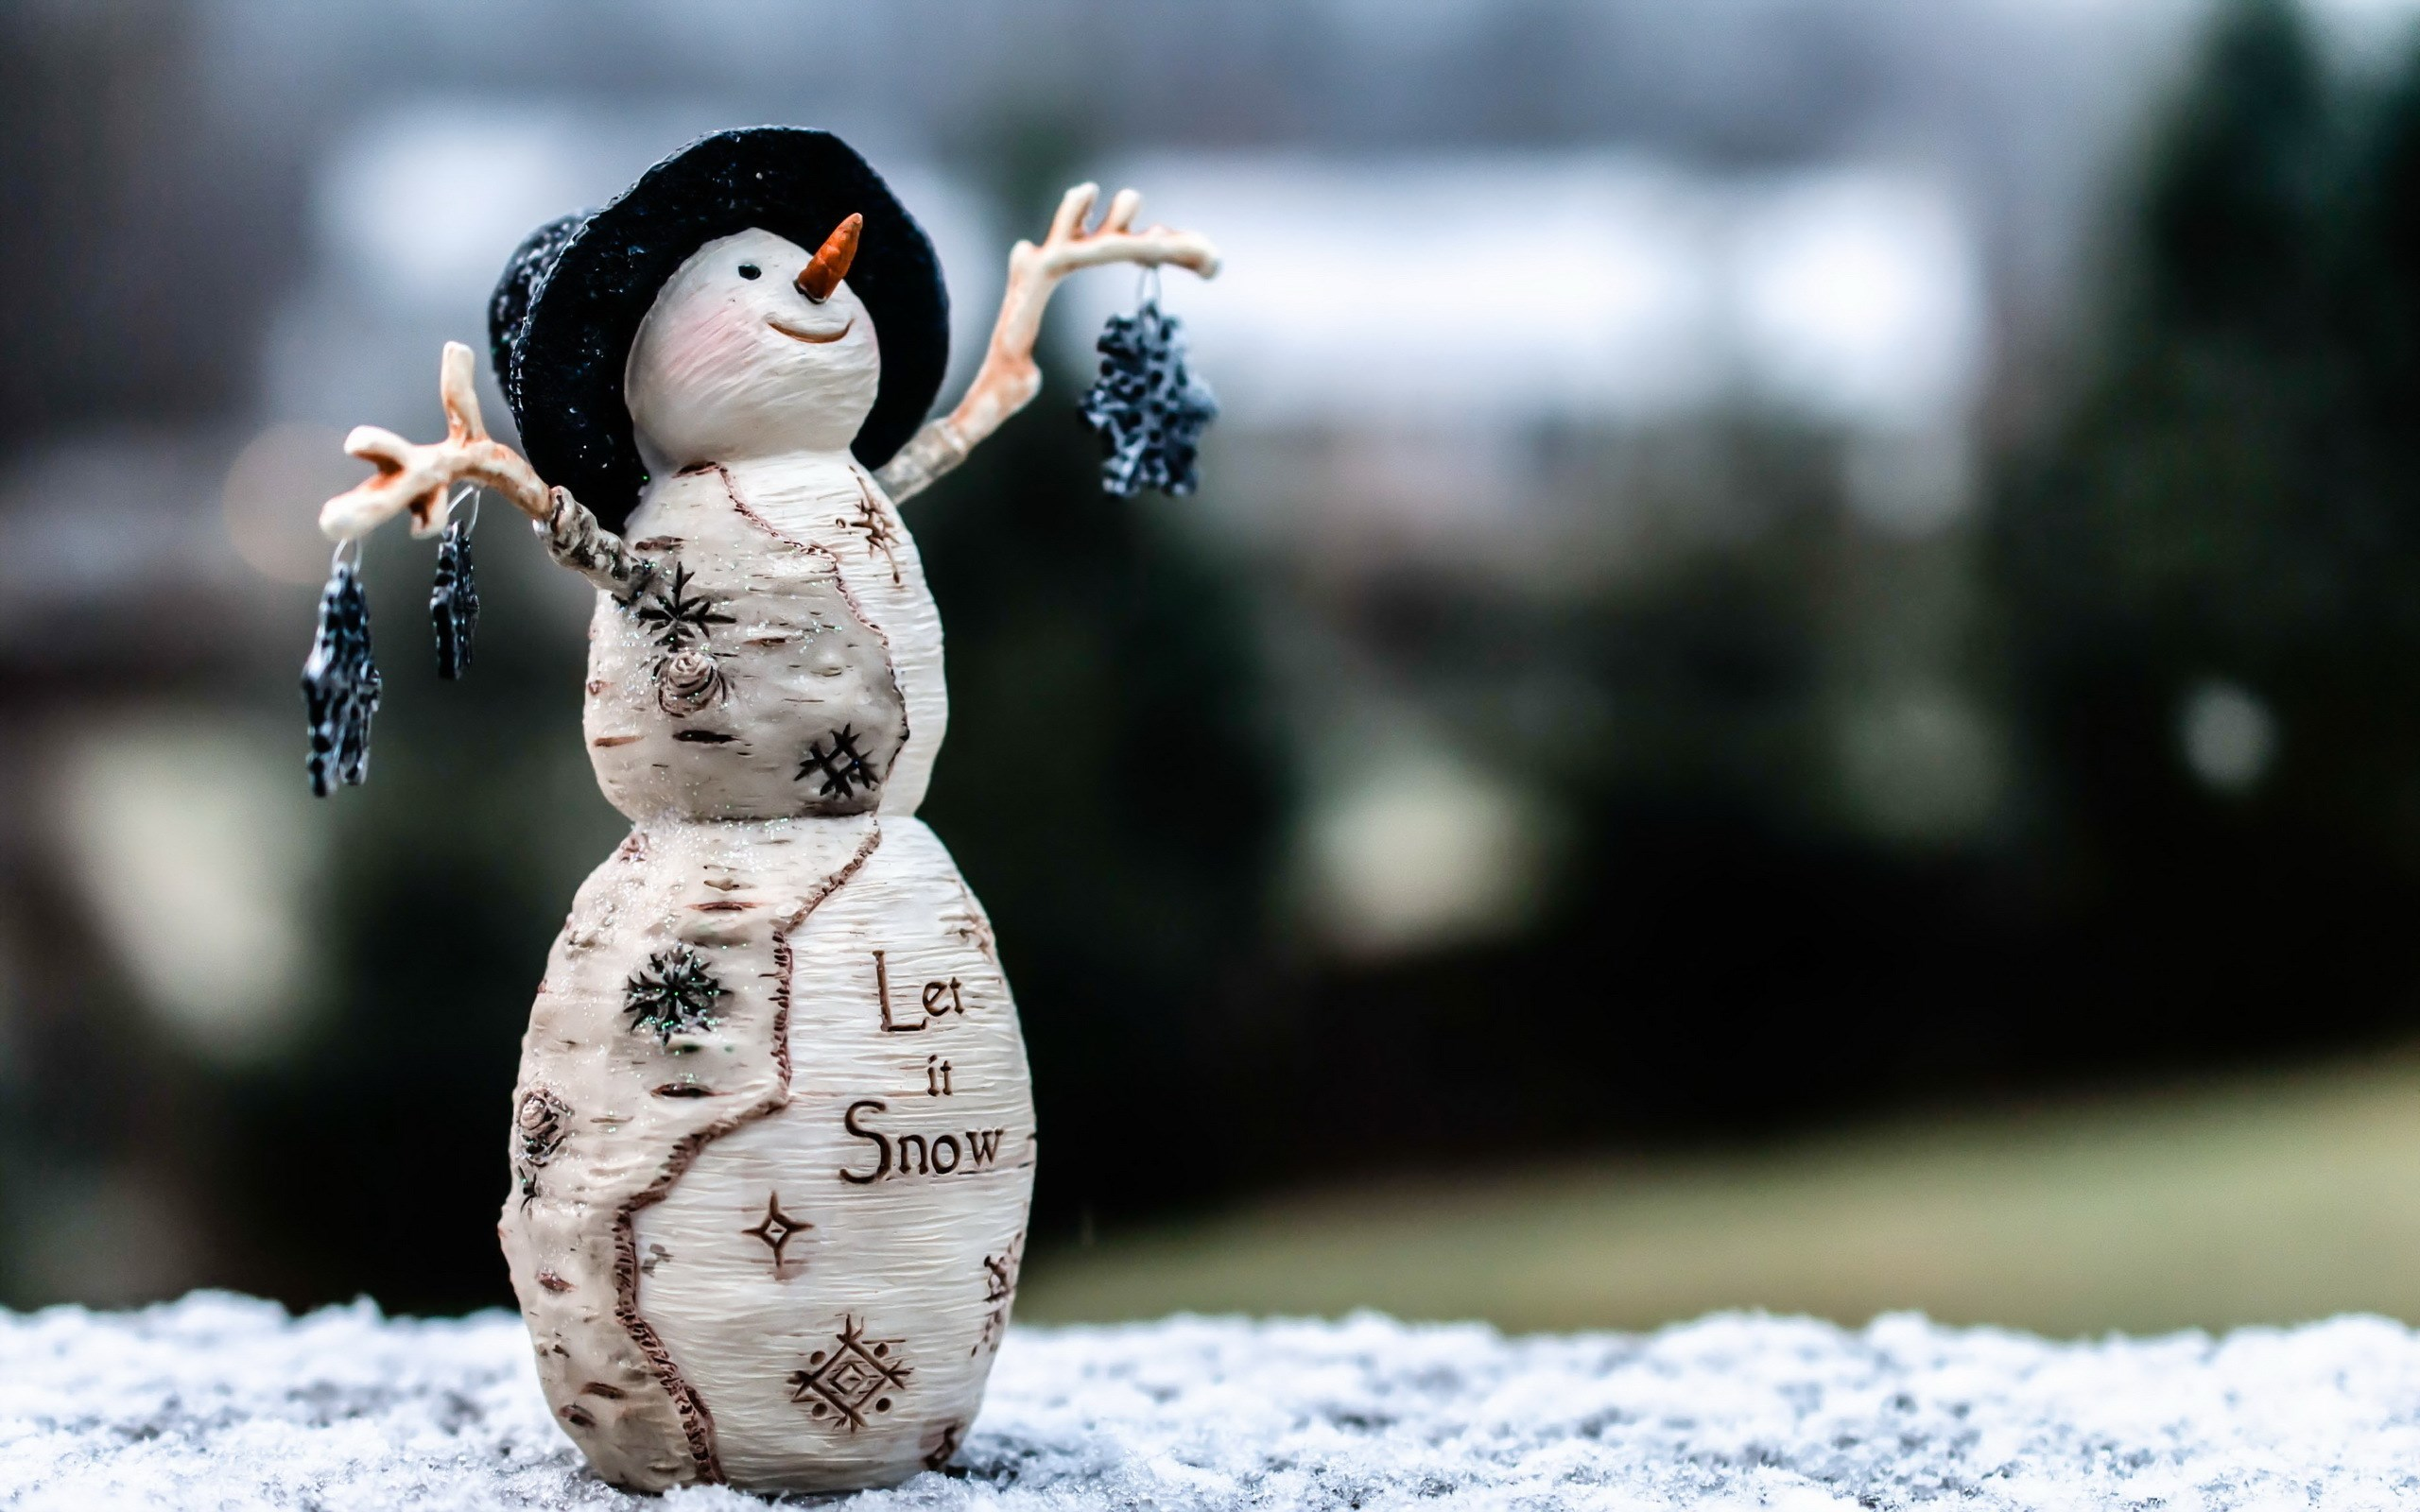 Winter Snowman Toy